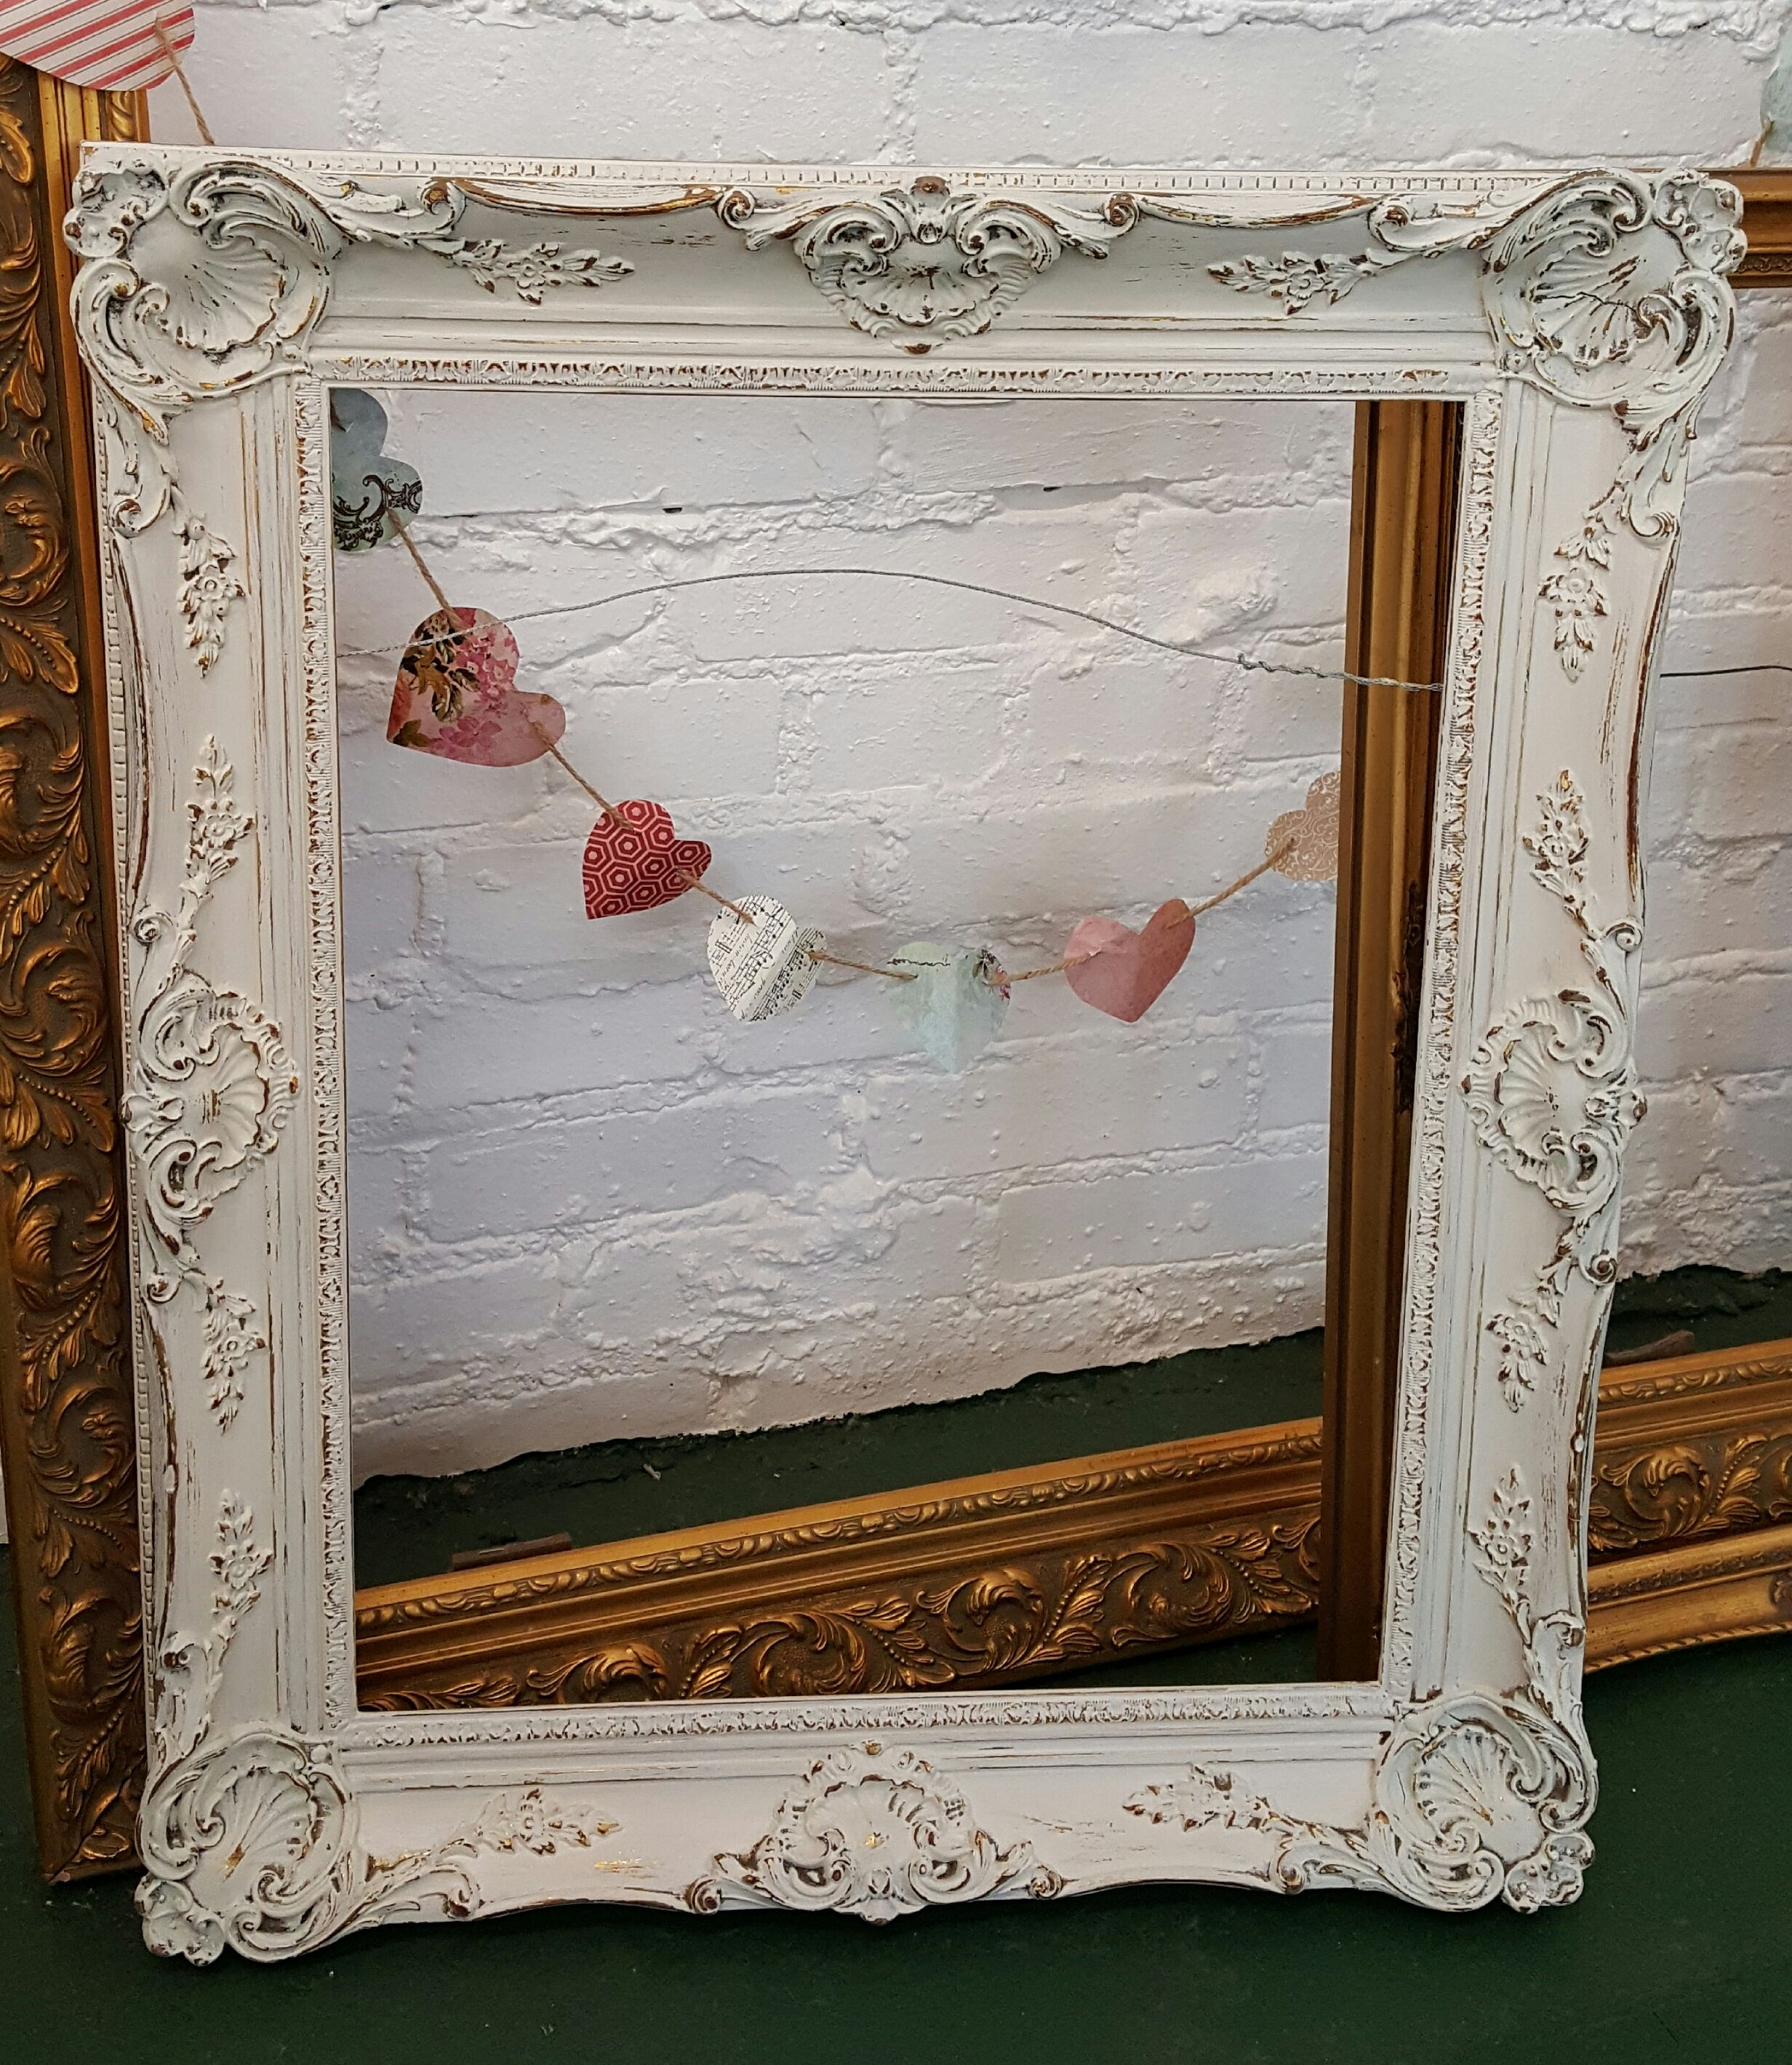 Vintage White Ornate Picture Frame Shabby Chic Look Great For Weddings Or Memories Visit Our Ornate Picture Frames Vintage Character Antique Picture Frames